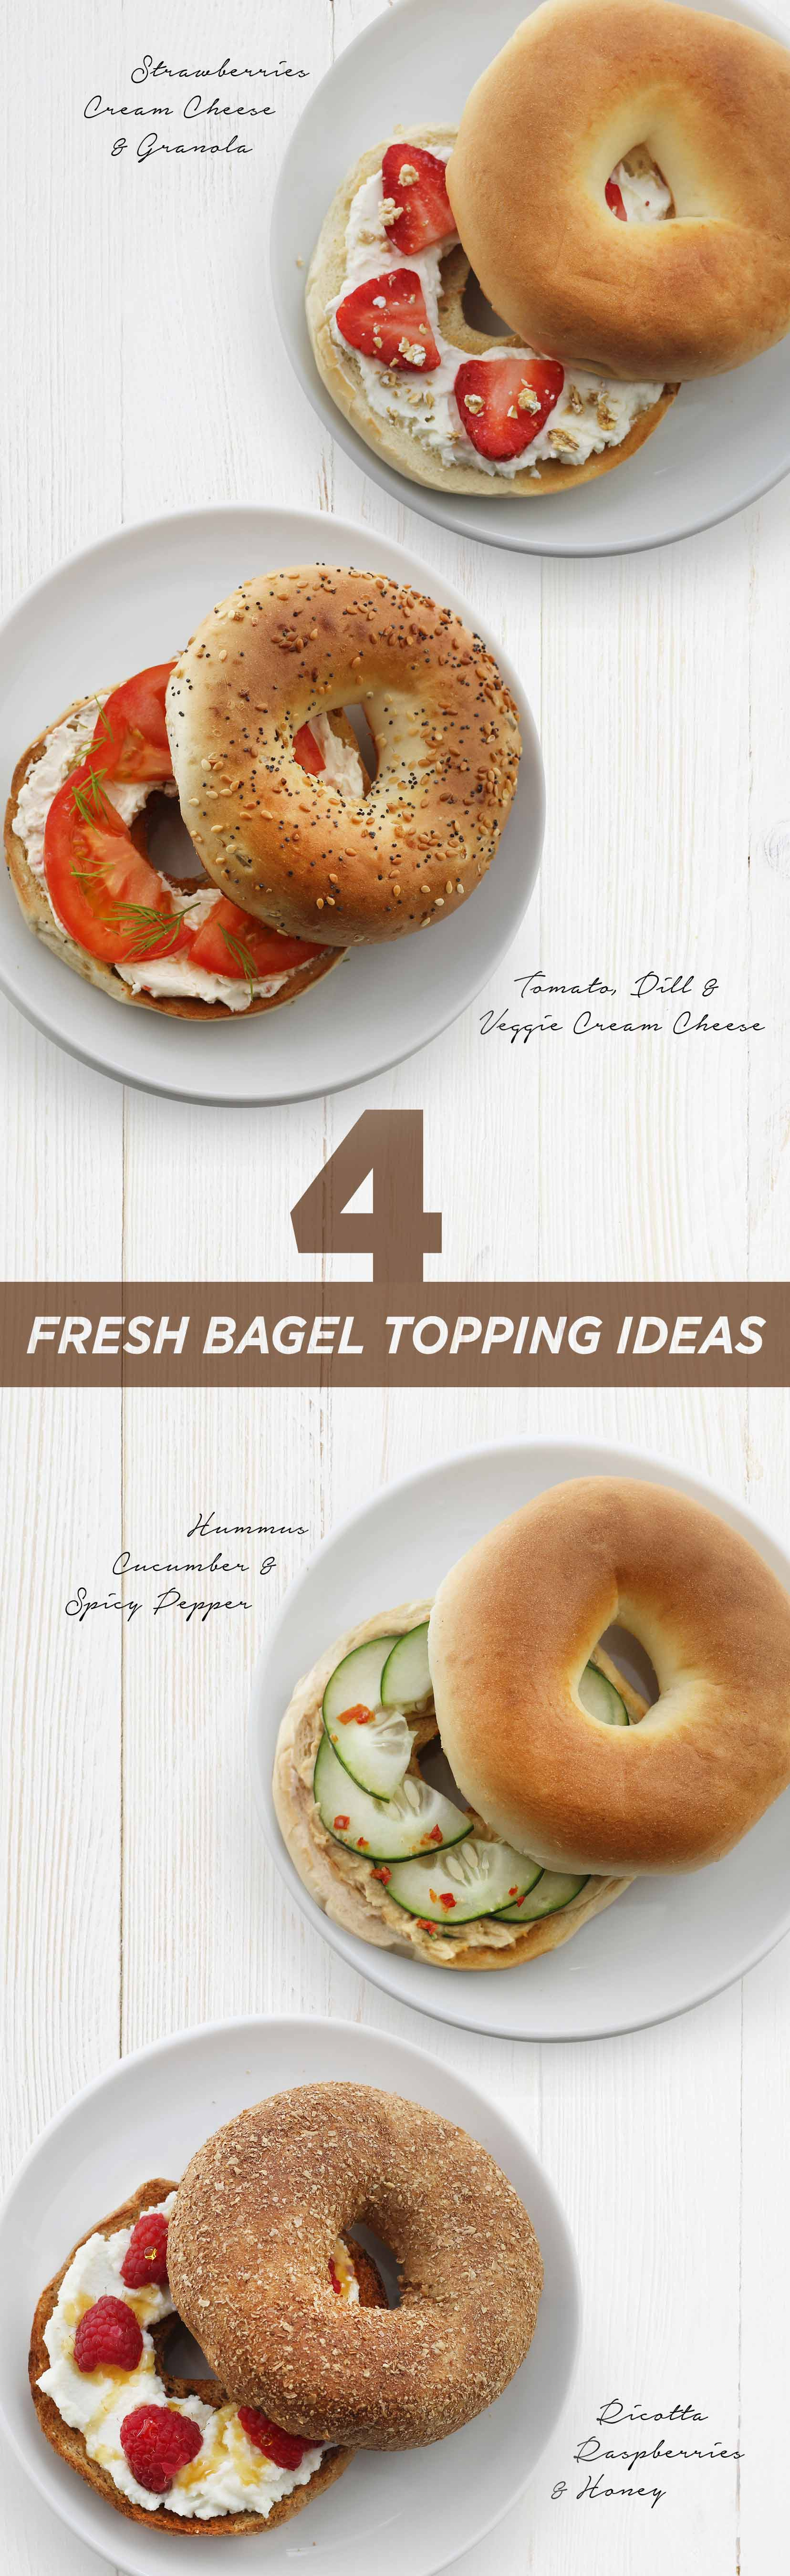 Fresh Bagel Toppings Create New Ways To Enjoy A Thomas Bagel With These Simple And Delicious Combinations Recipes Bagel Toppings Breakfast Recipes